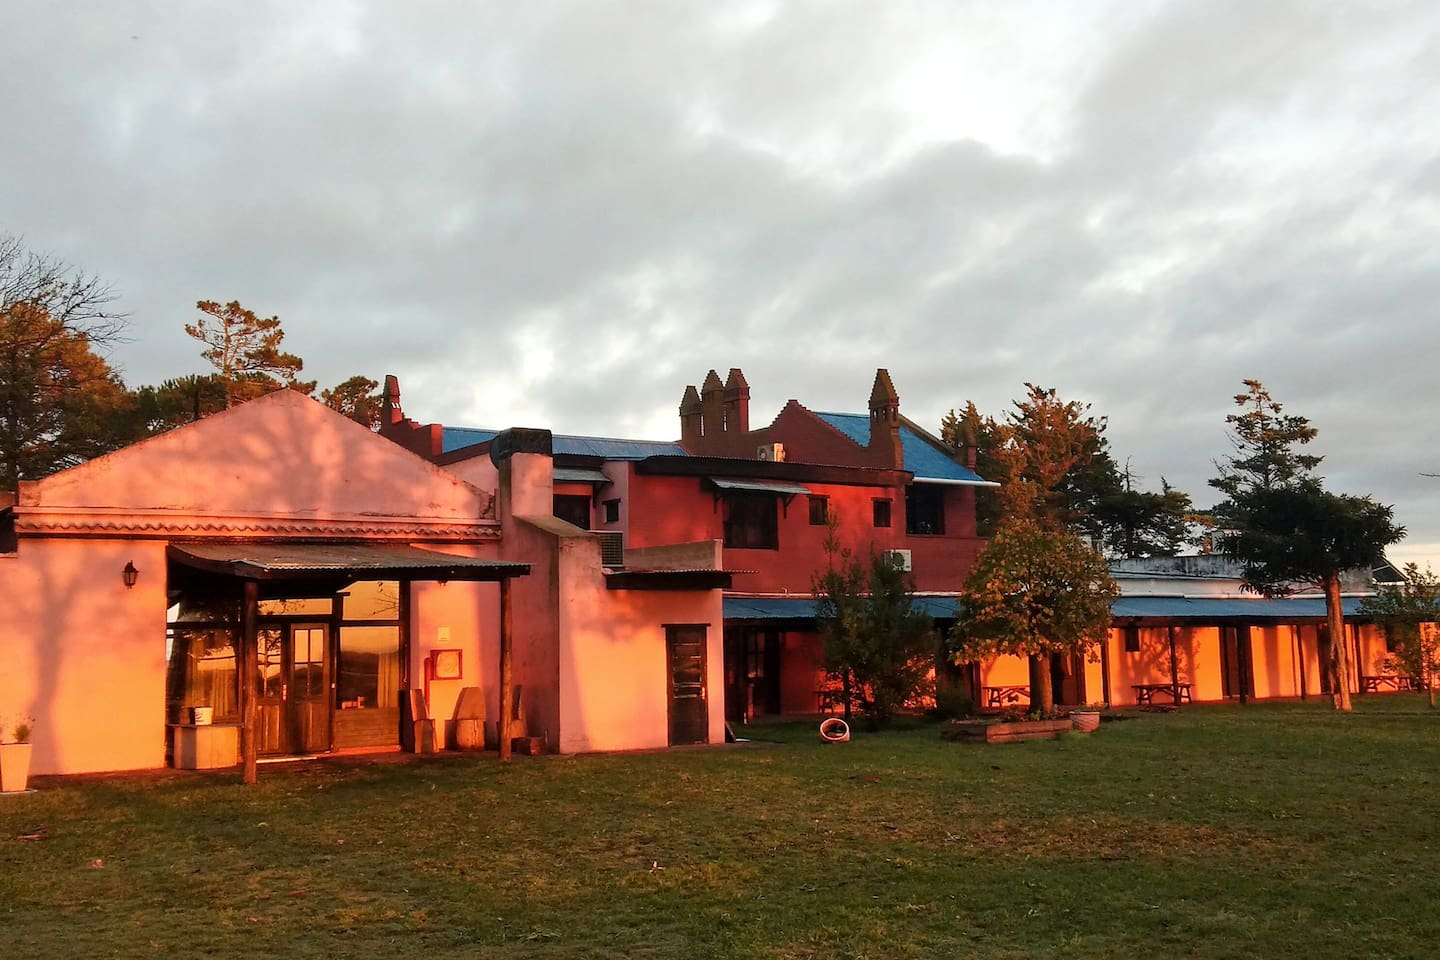 The main building at sunrise